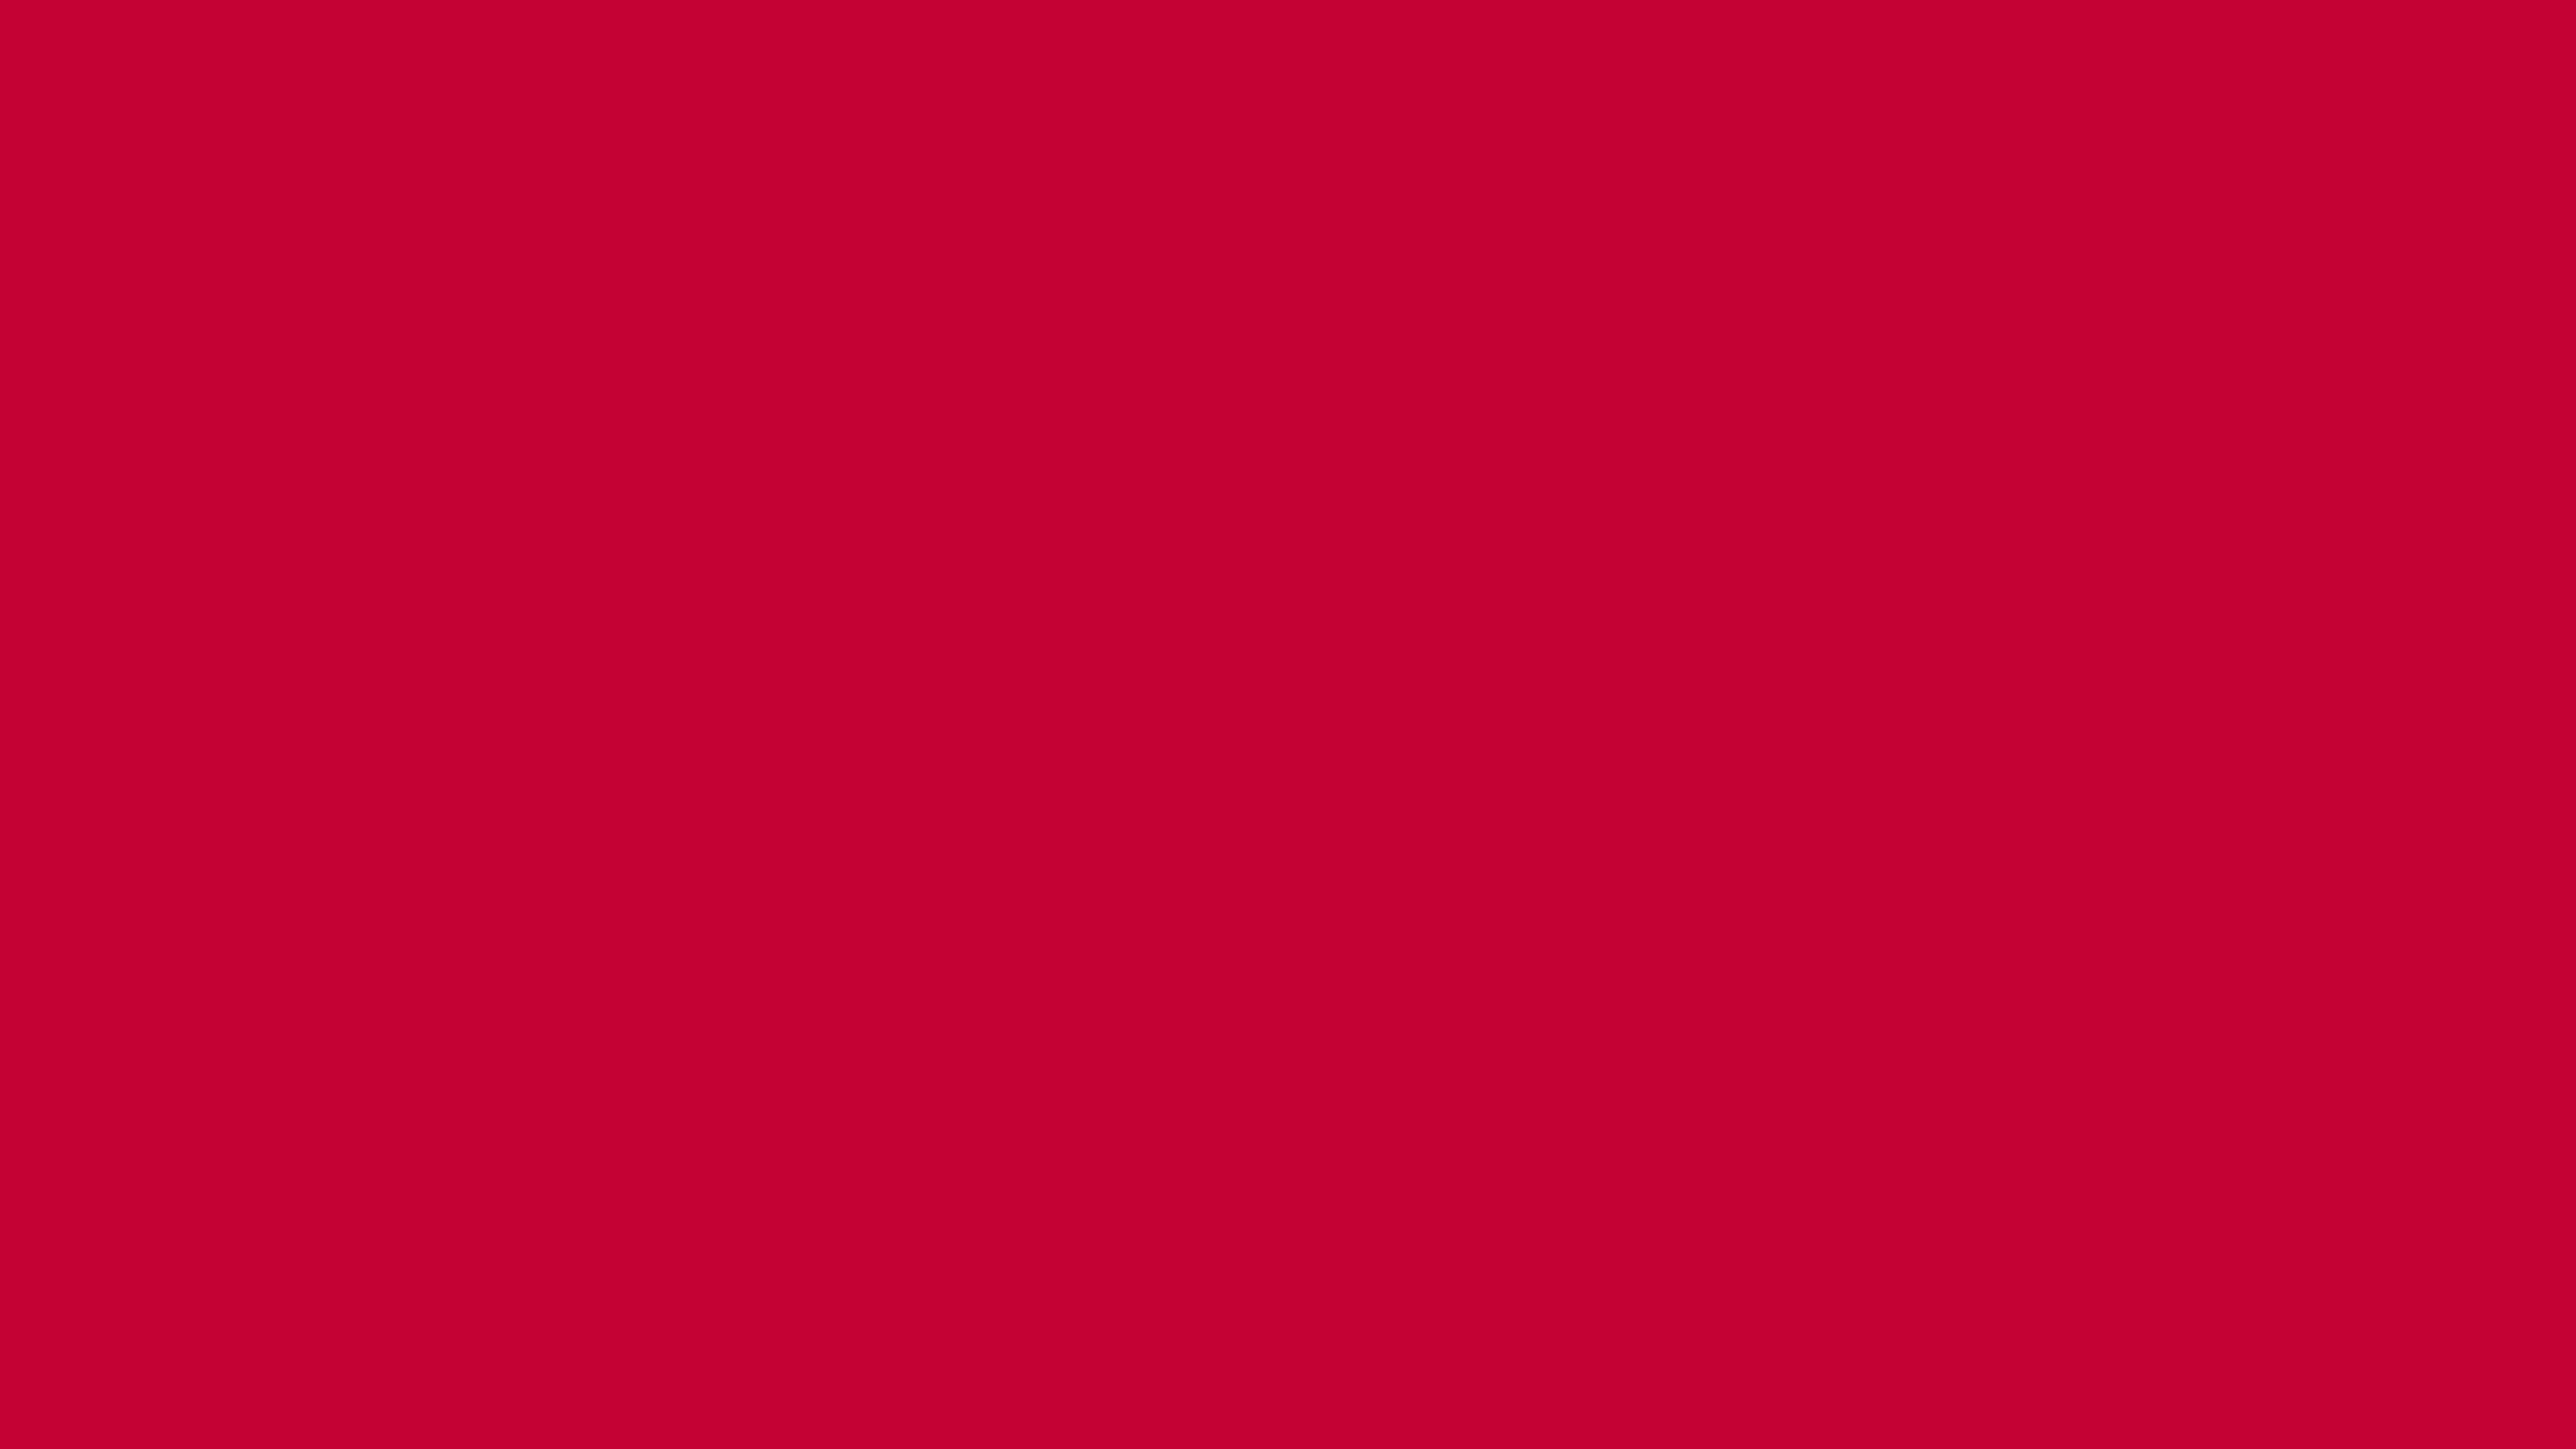 5120x2880 Red NCS Solid Color Background